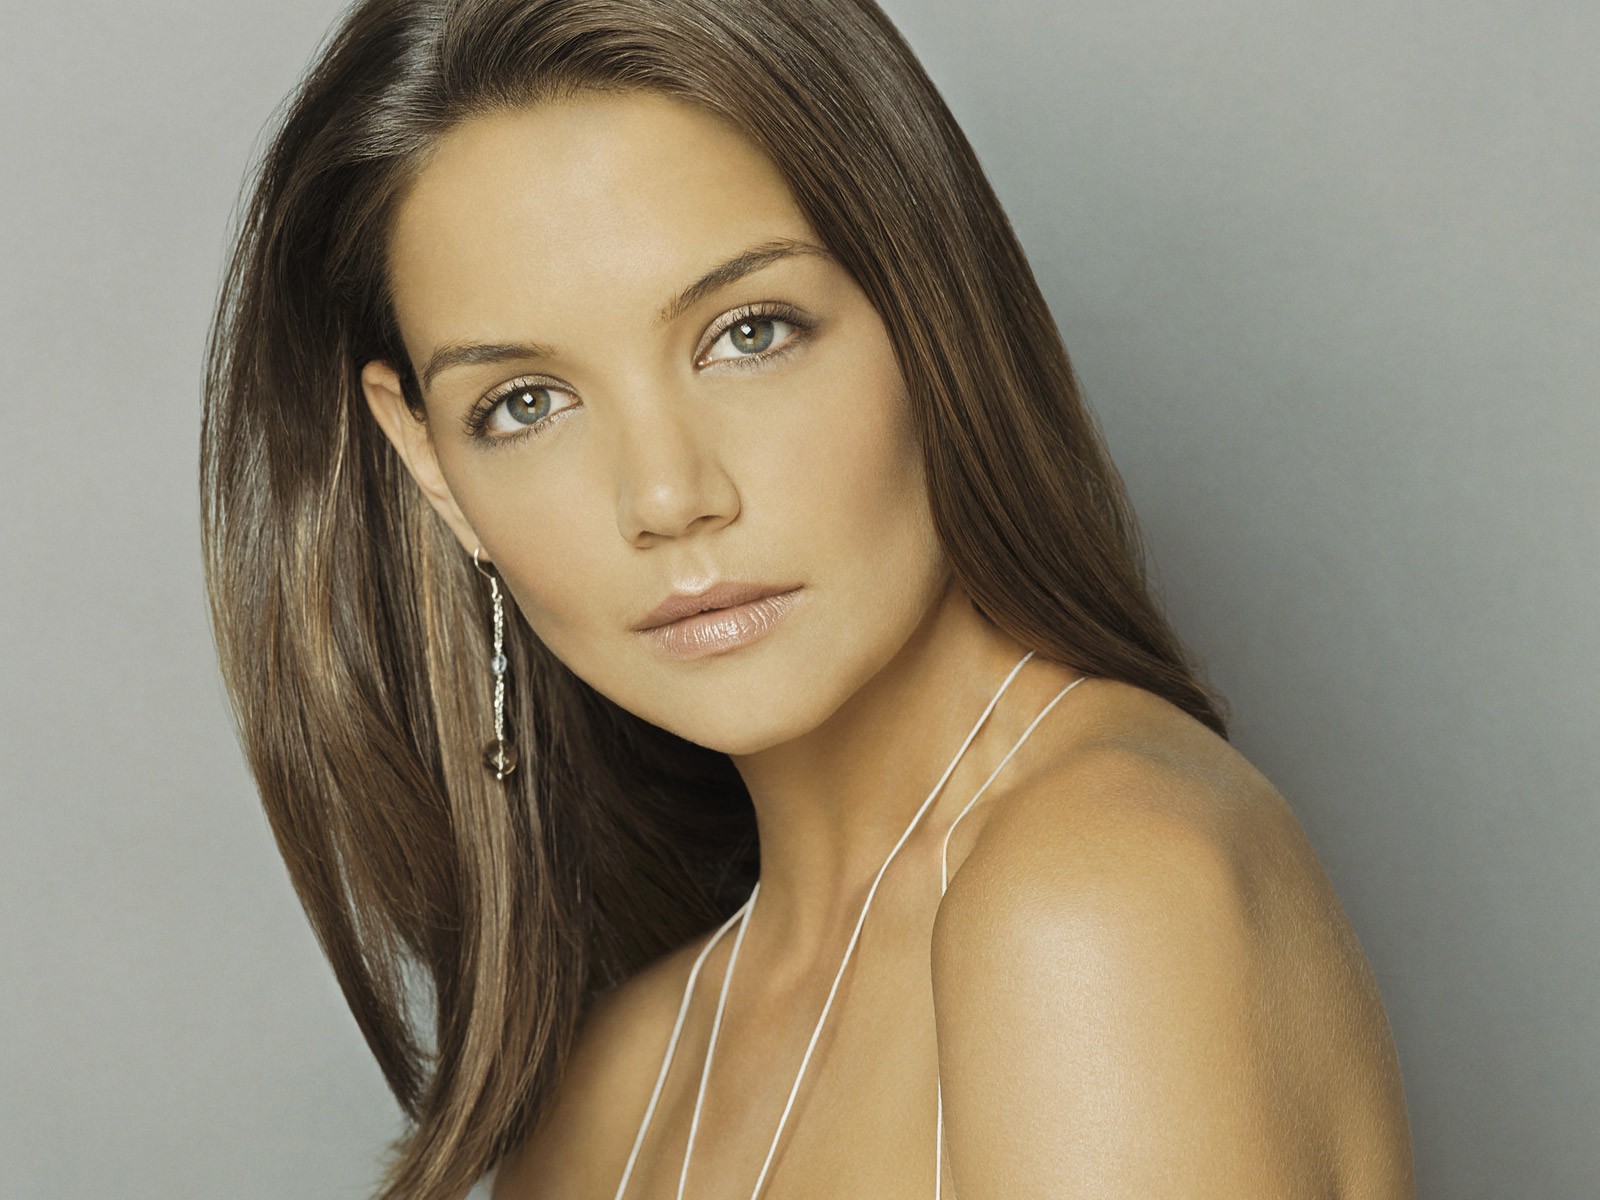 Katie Holmes images Katie HD wallpaper and background photos (135235) Katie Holmes